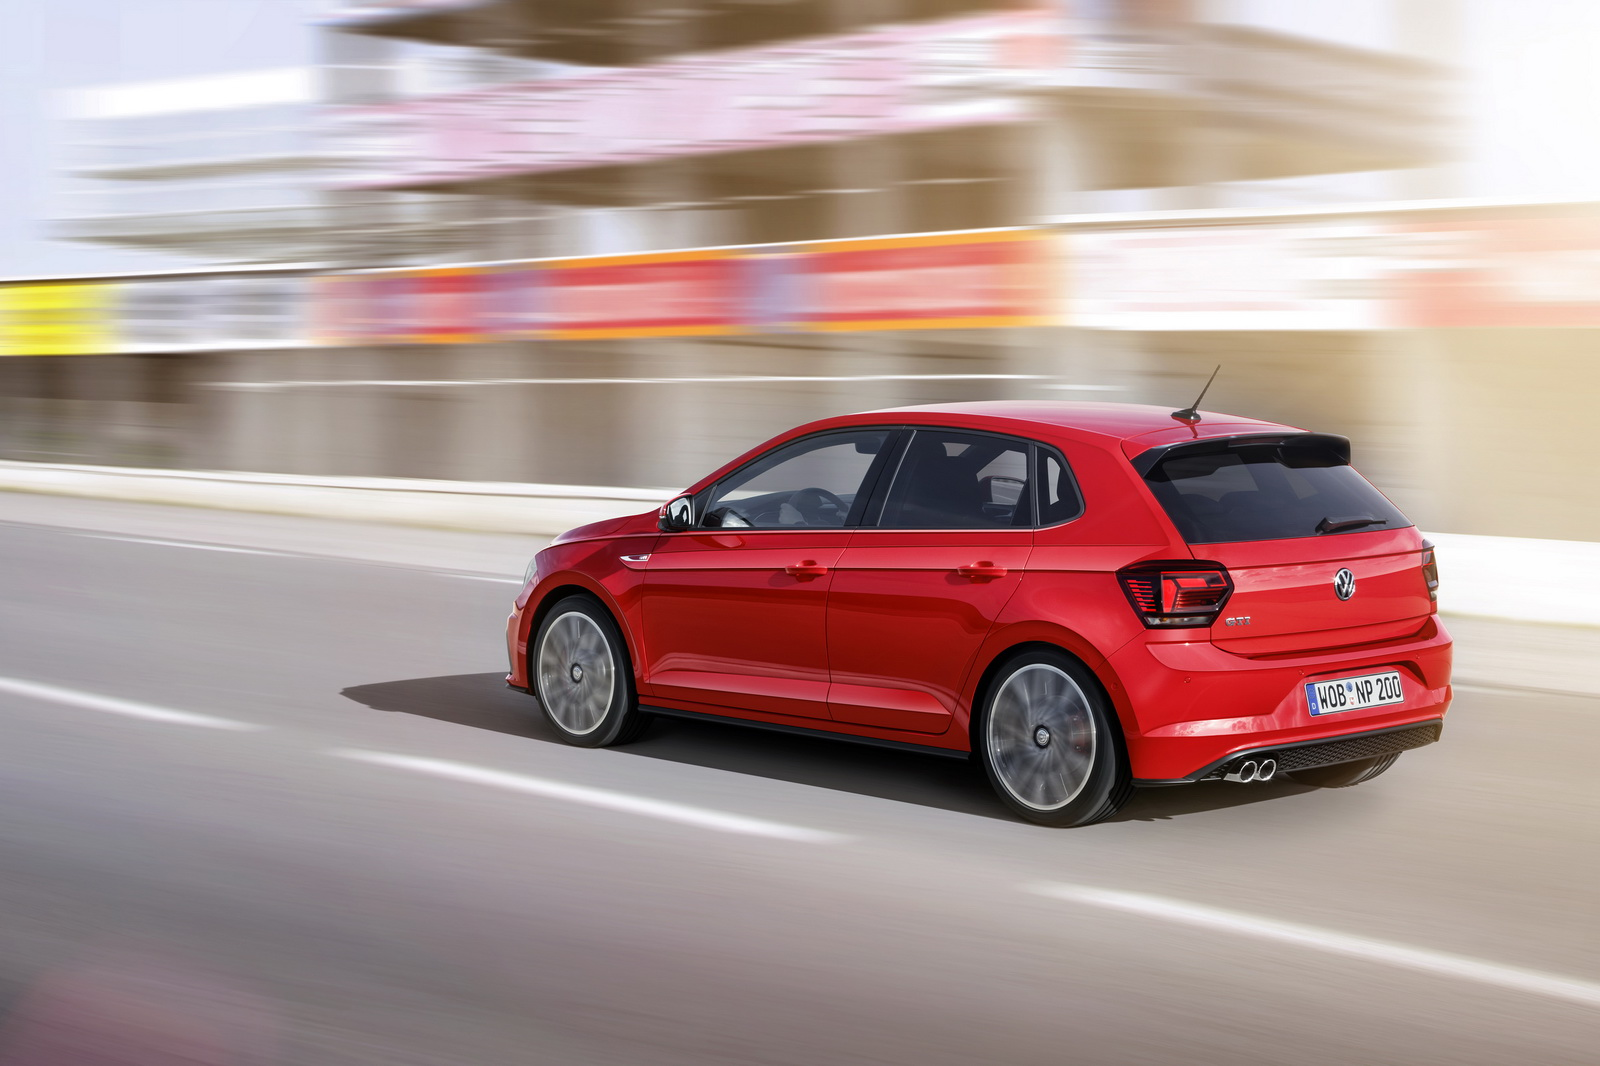 Volkswagen Polo and Polo GTI 2018 (39)